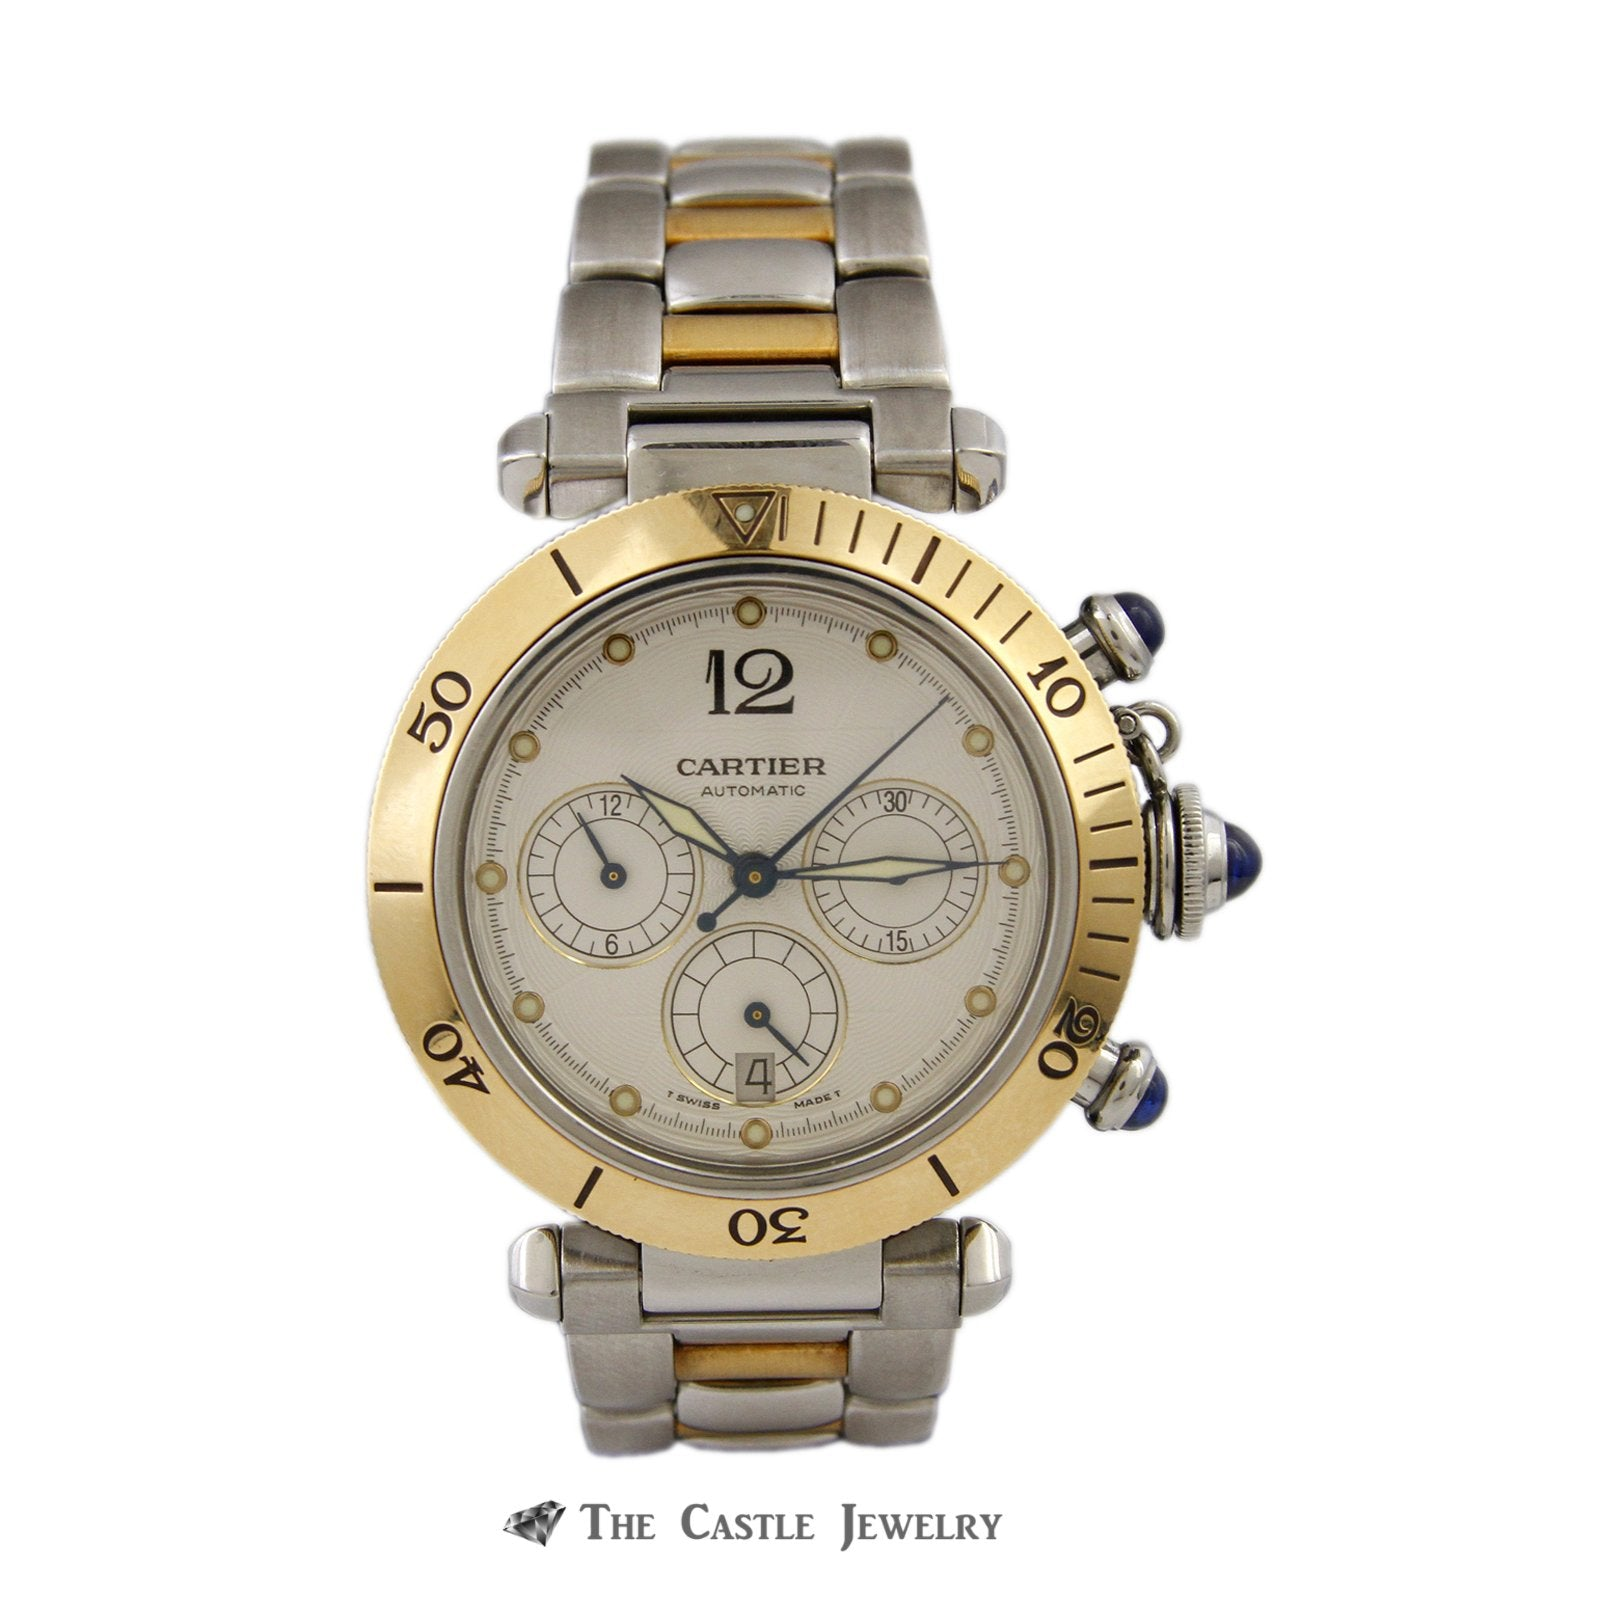 Cartier Pasha de Cartier Watch 18K & Steel 38mm Chronograph Ref. 2113